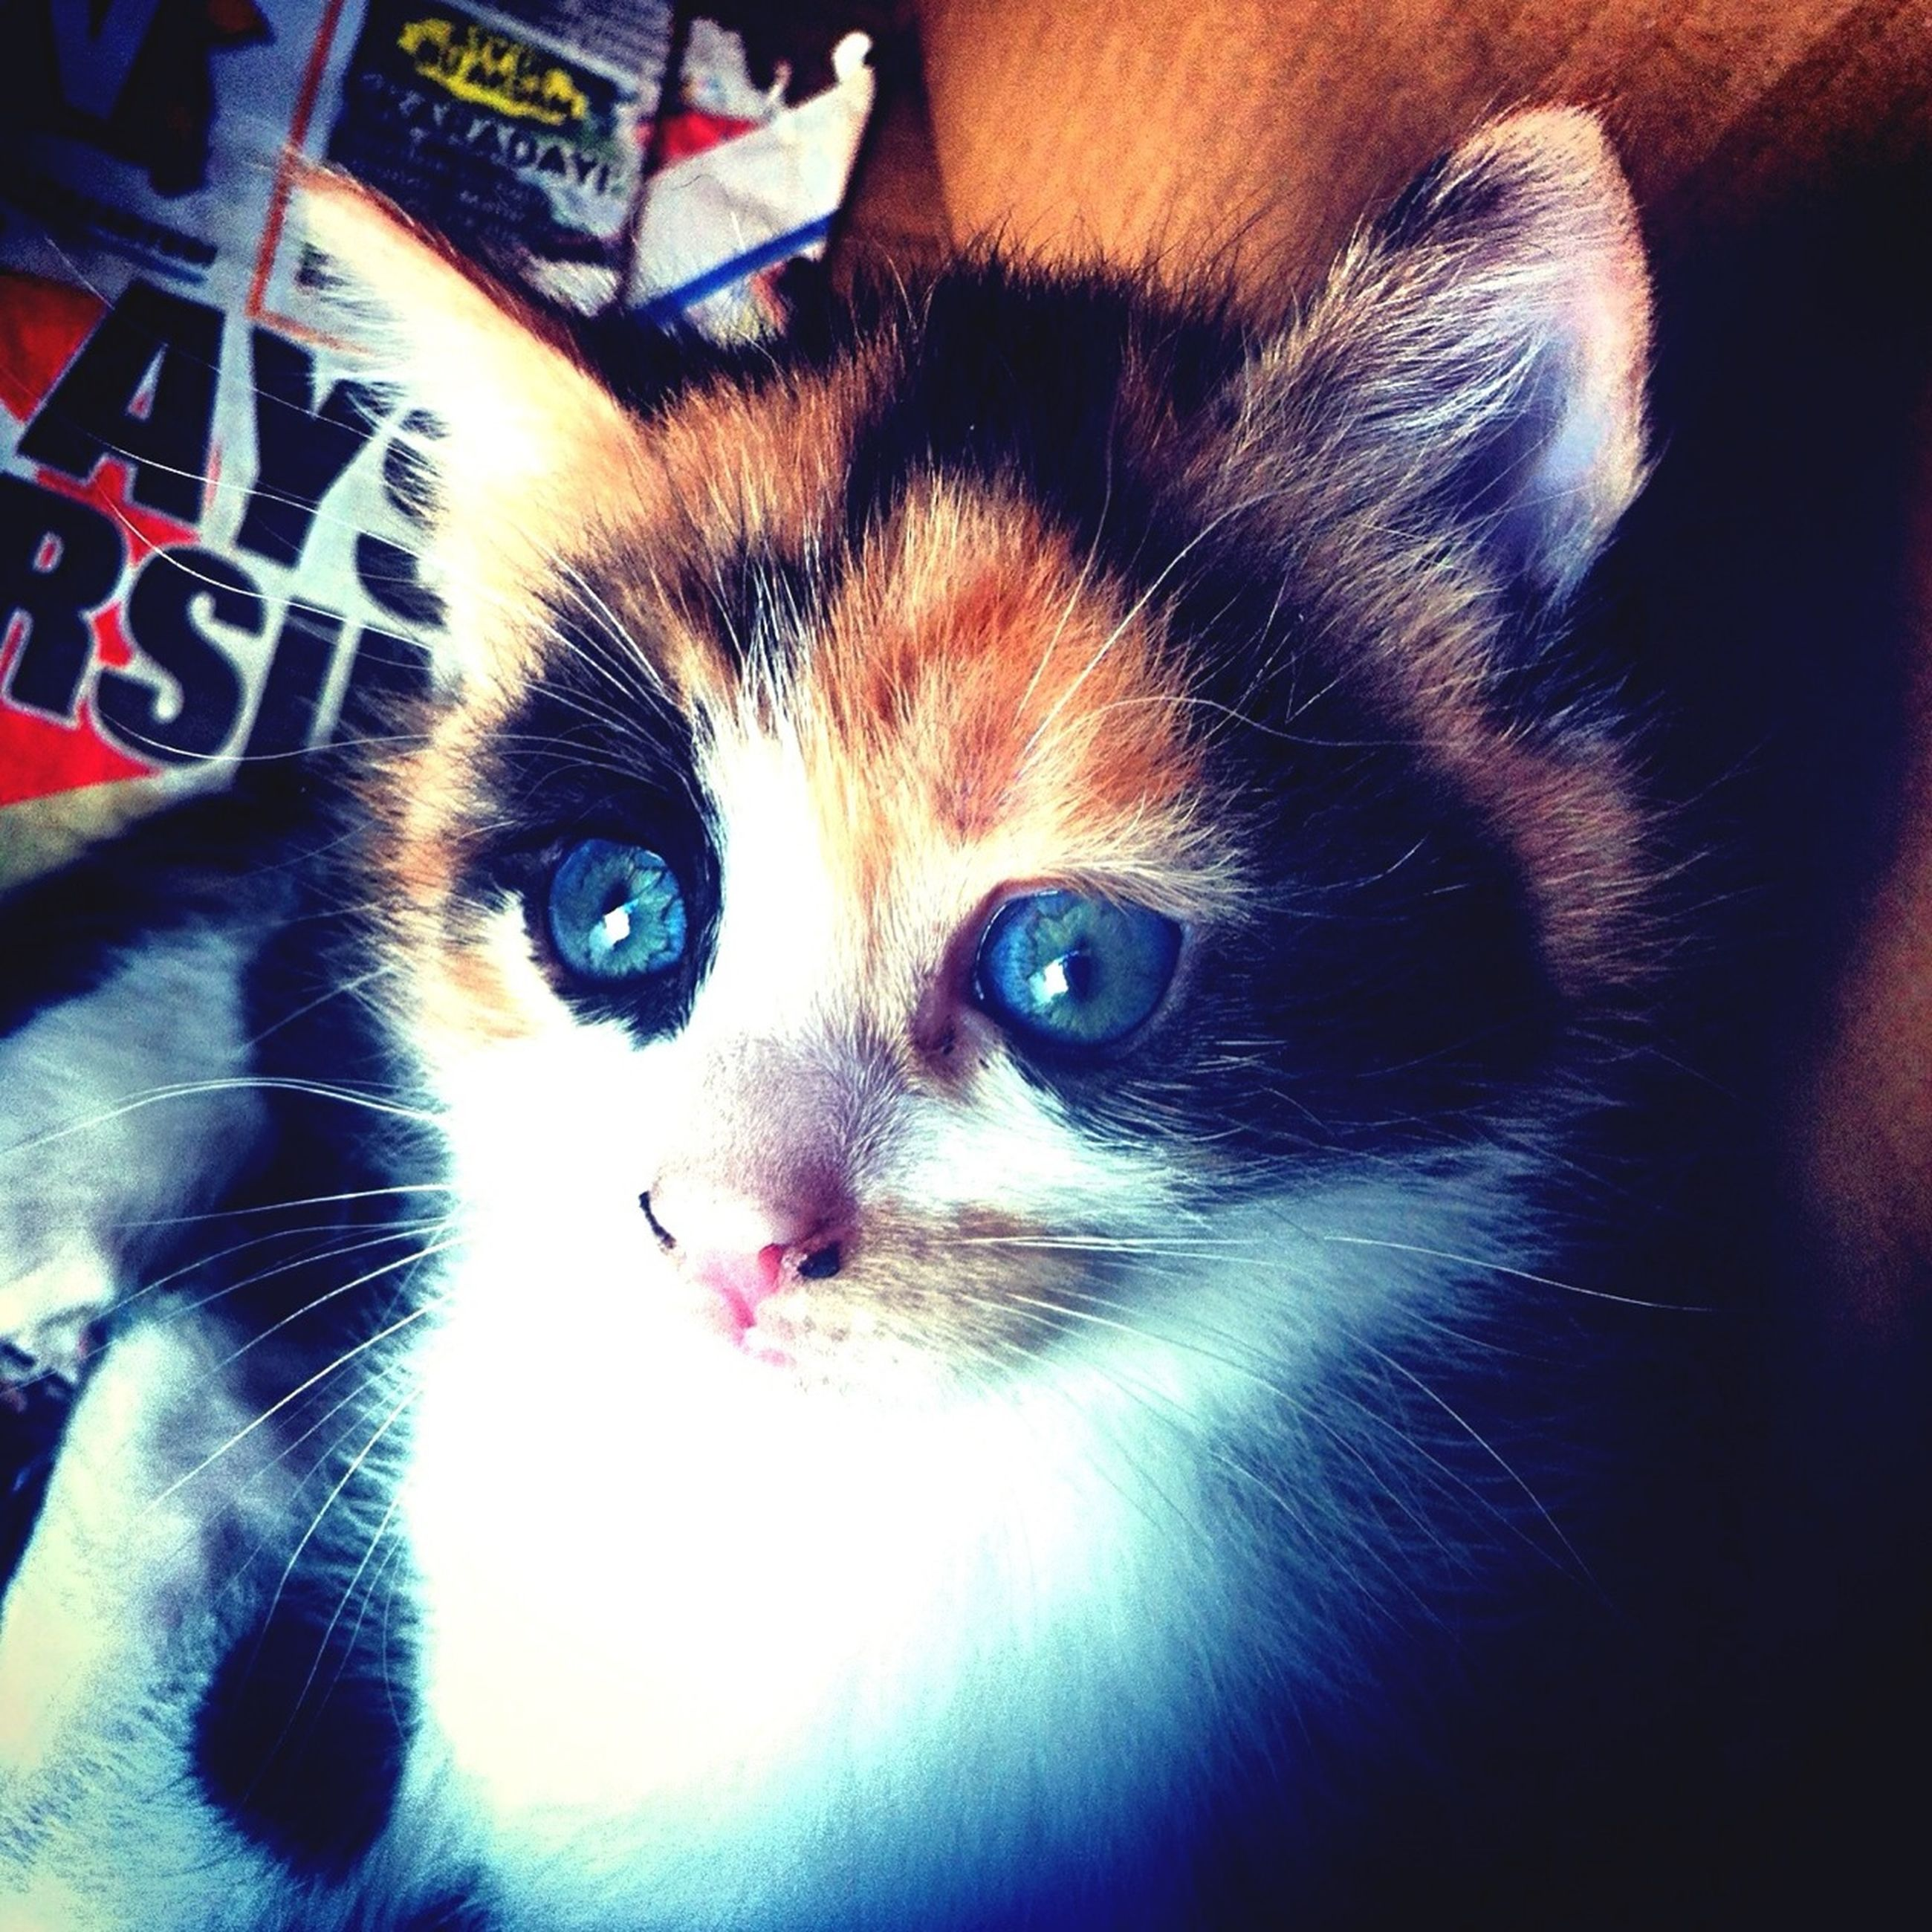 pets, indoors, domestic animals, animal themes, one animal, looking at camera, portrait, mammal, domestic cat, cat, whisker, feline, close-up, high angle view, animal head, home interior, relaxation, no people, animal eye, black color